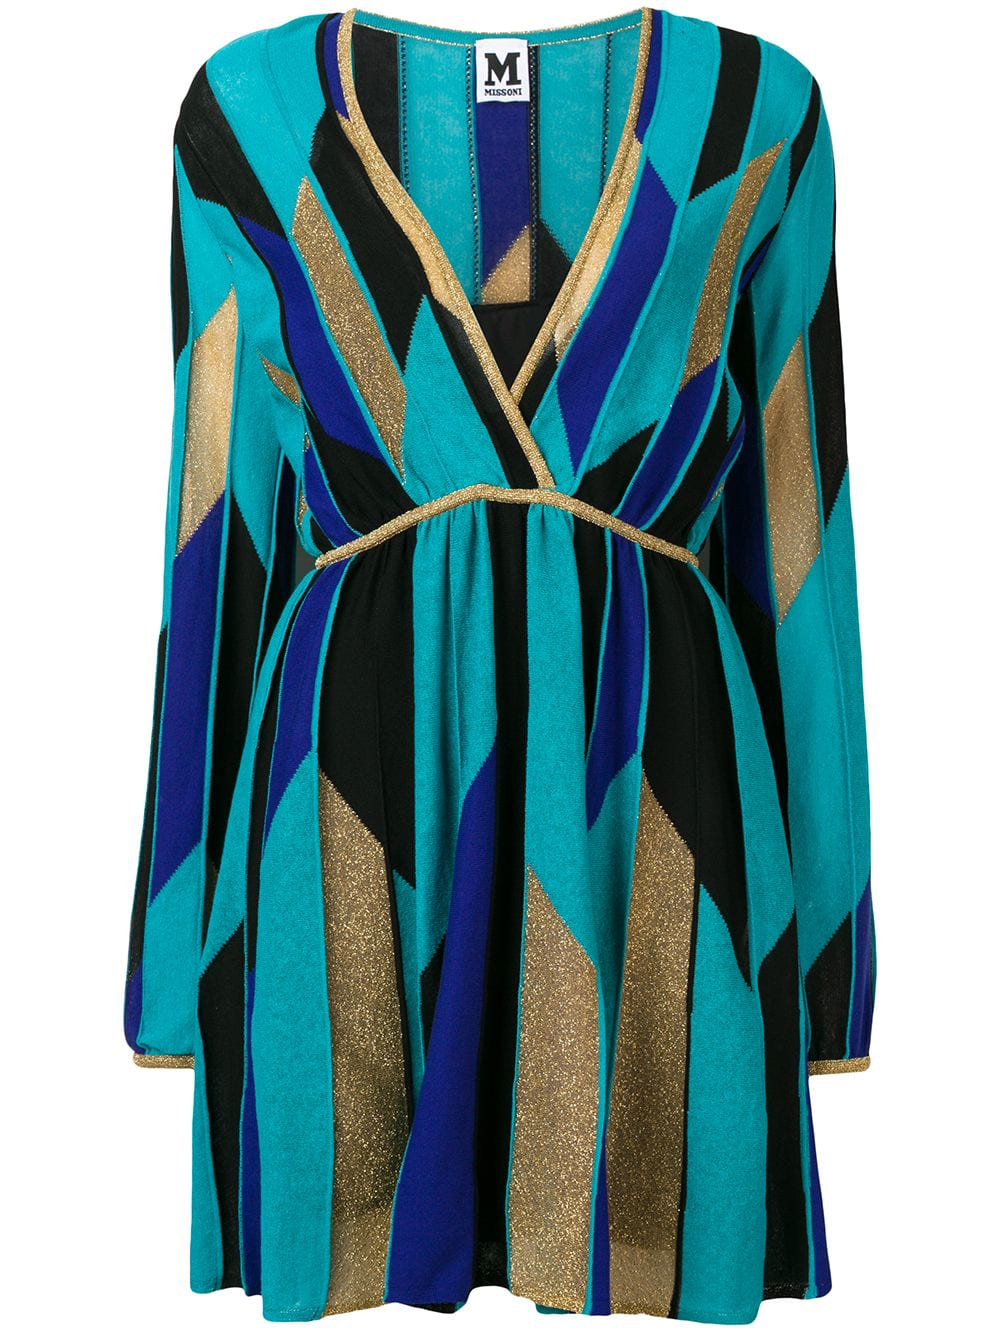 480245d3d8 M Missoni Geometric Intarsia Dress In Blue | ModeSens